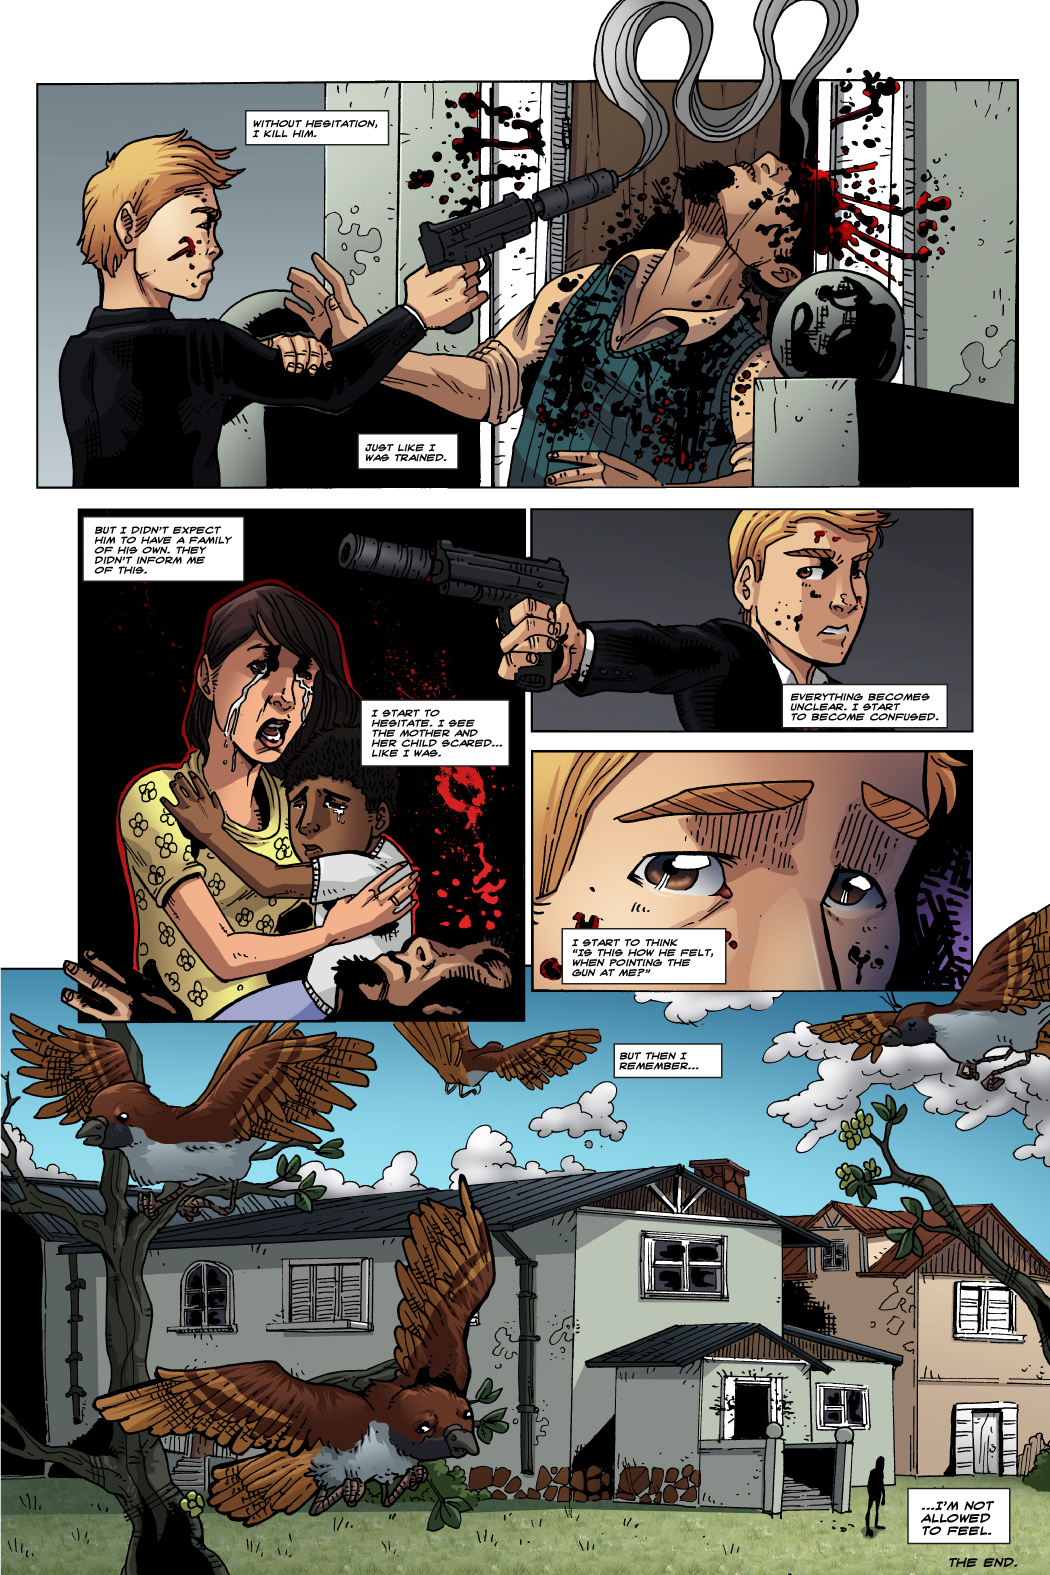 GONE IS INNOCENCE (Page 8)